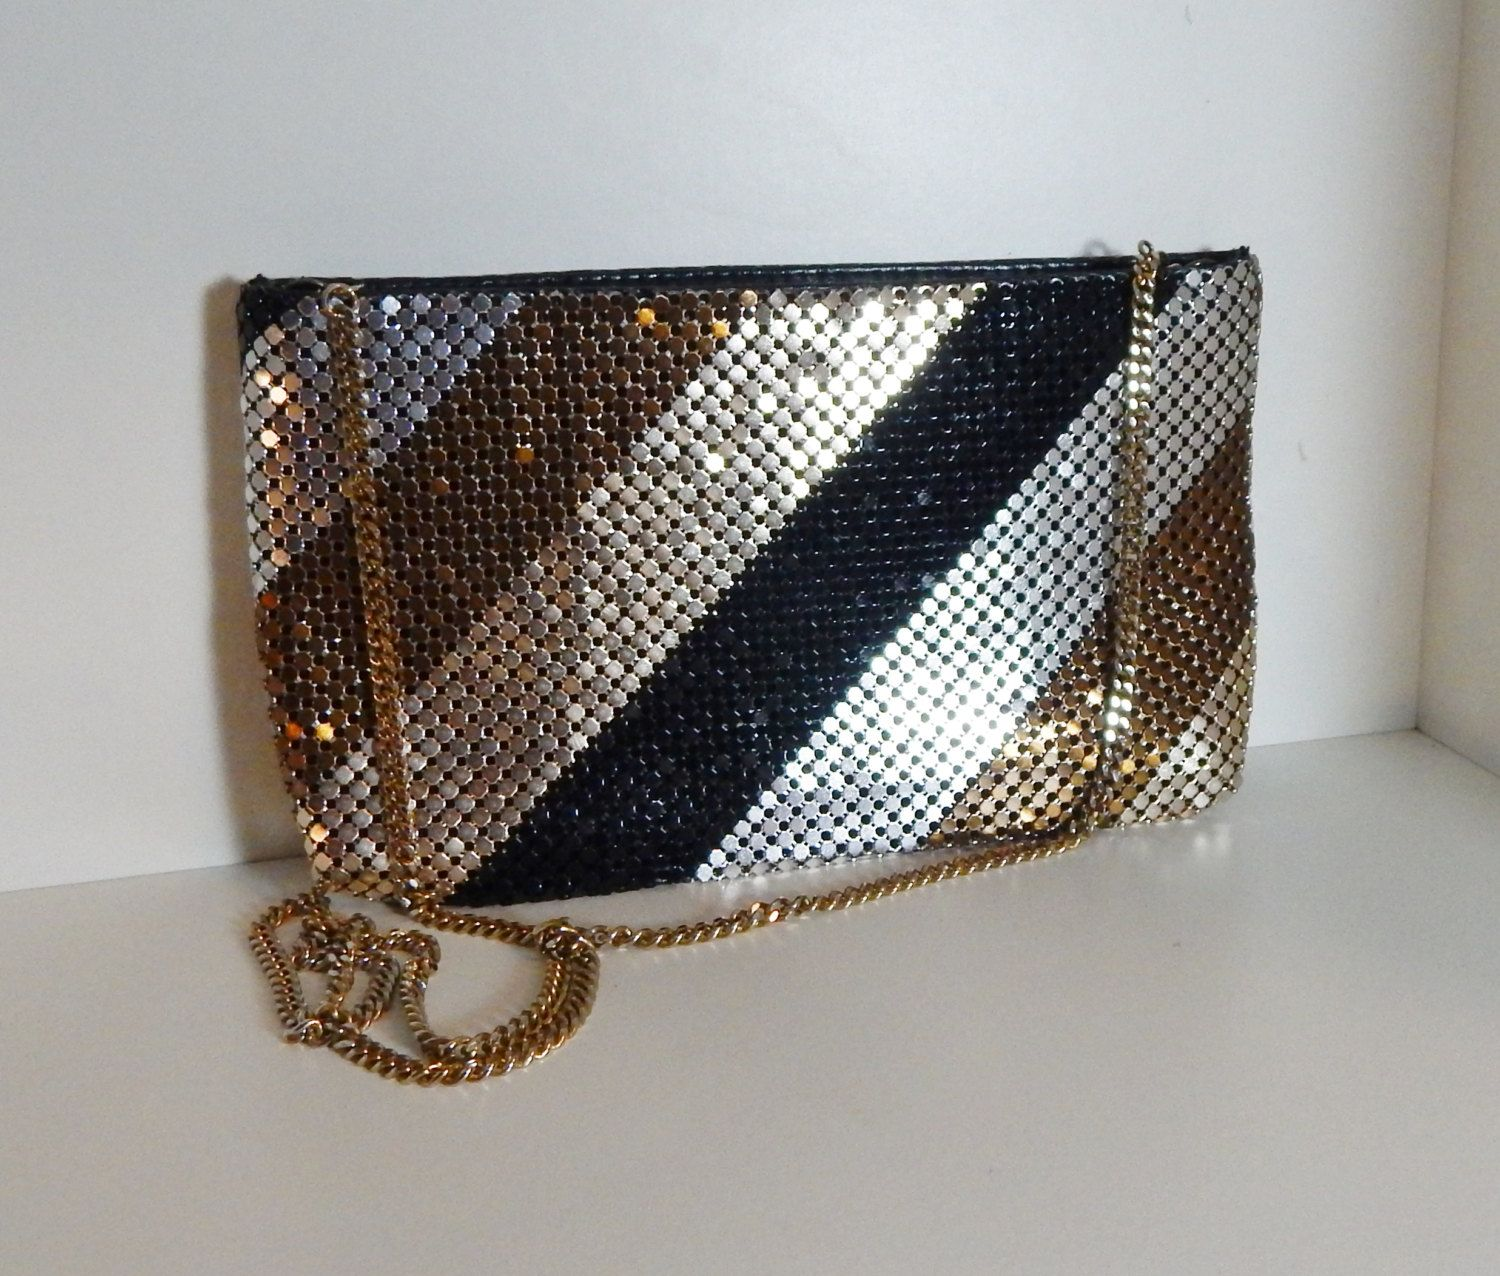 Vintage Clutch Metallic Metal Mesh Link Purse Disco Evening Shoulder Bag  Black Gold Silver with Long Gold Chain Link Strap by OffbeatAvenue on Etsy f95849fbc89f